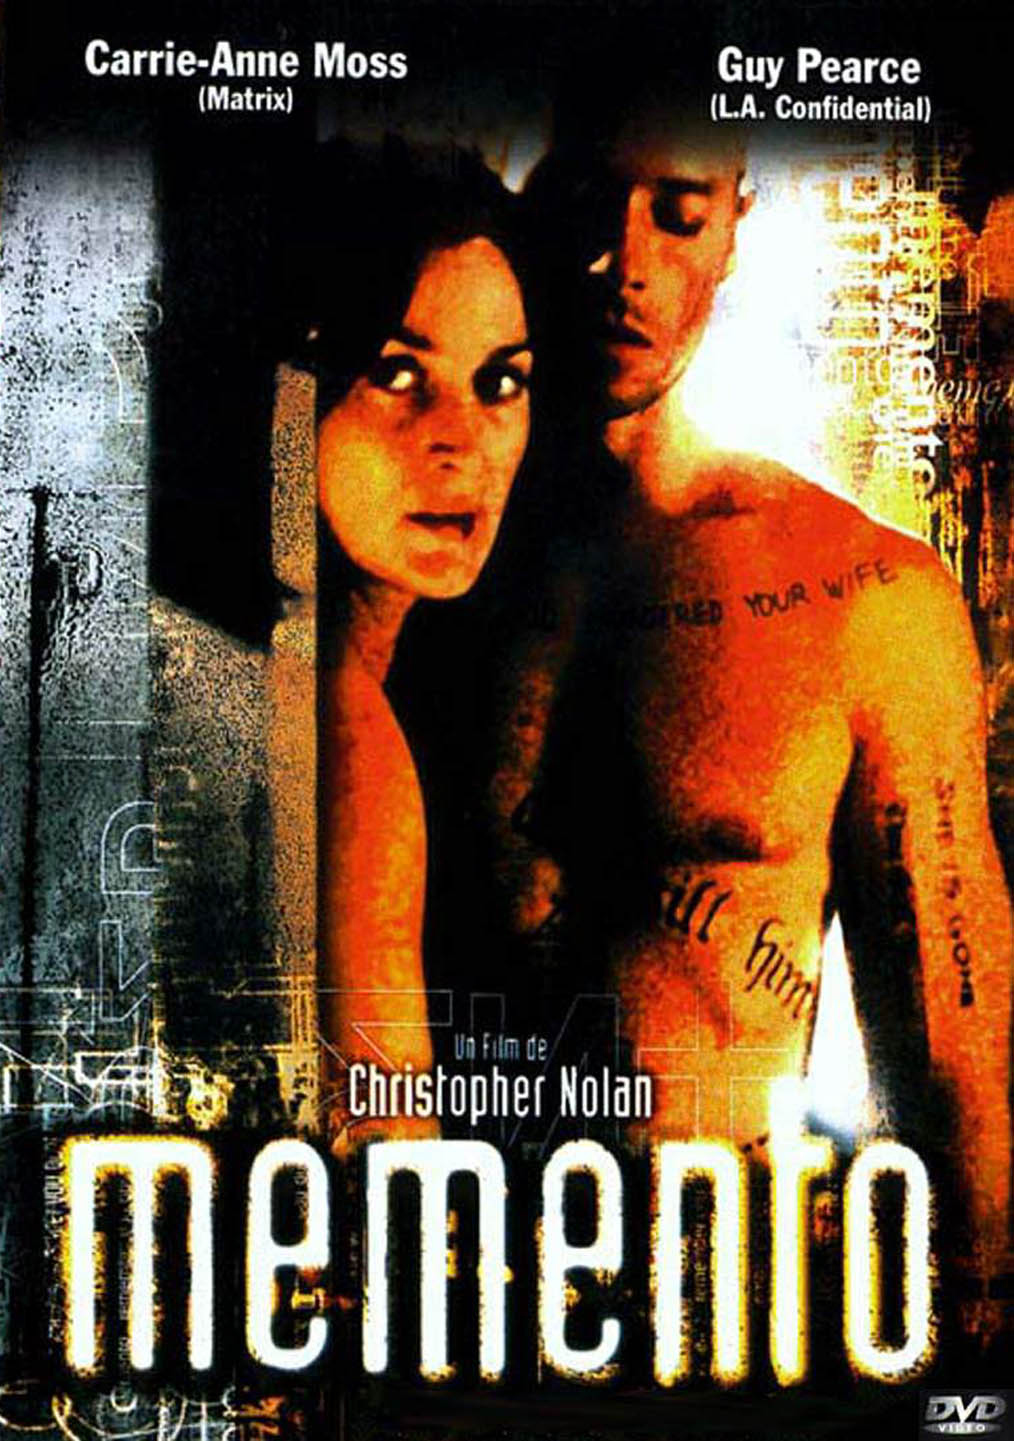 memento 2000 film nolan christopher he 2002 pelicula movies tattoos last sin revealing poster short chris cristopher loss